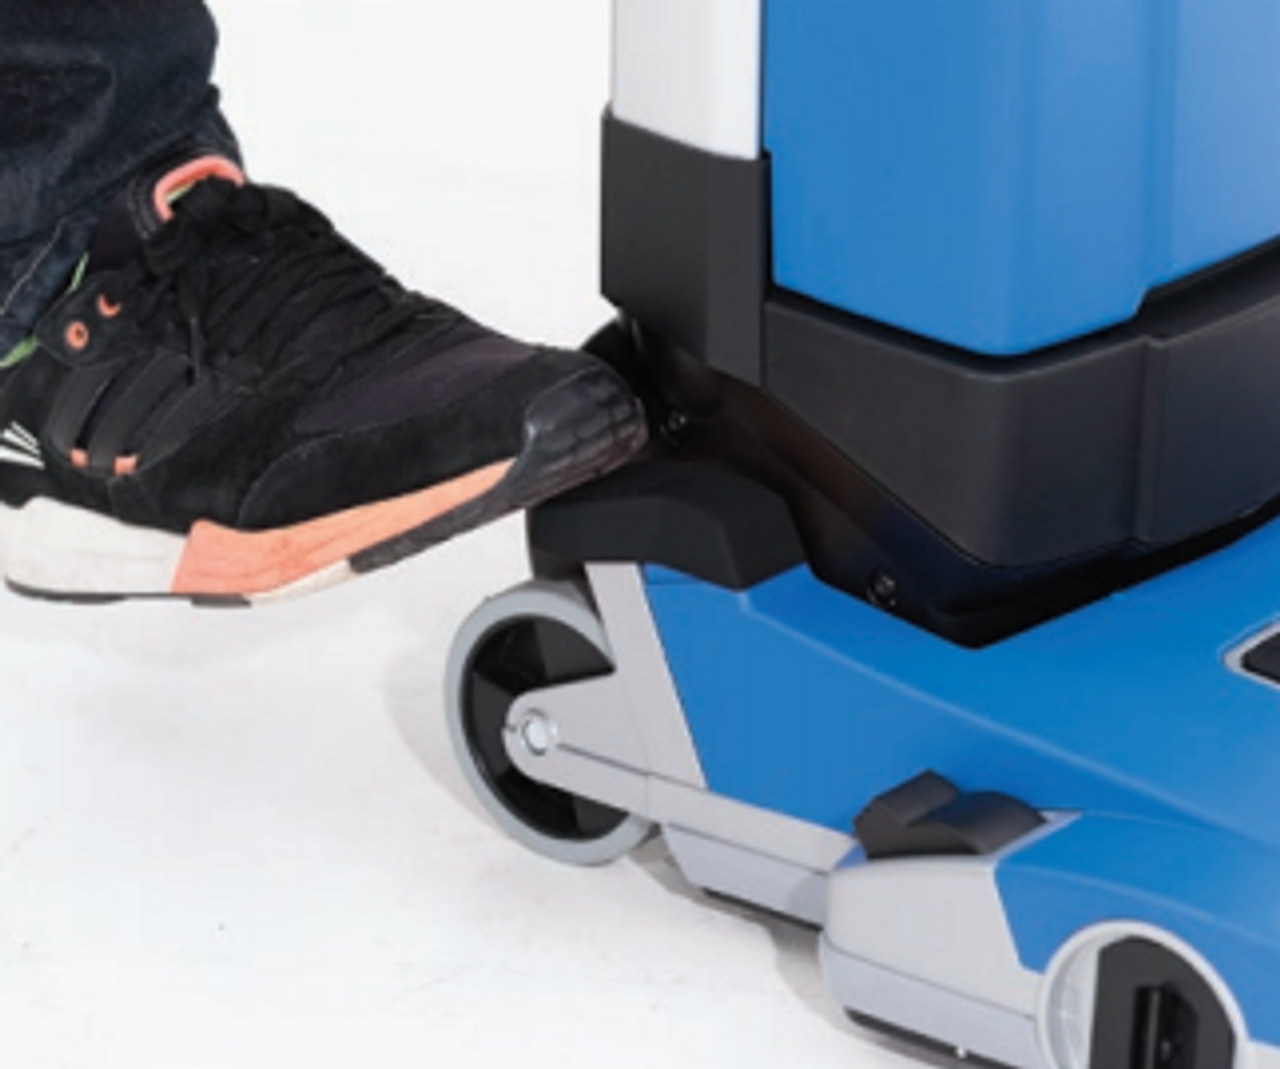 Foot activated controls